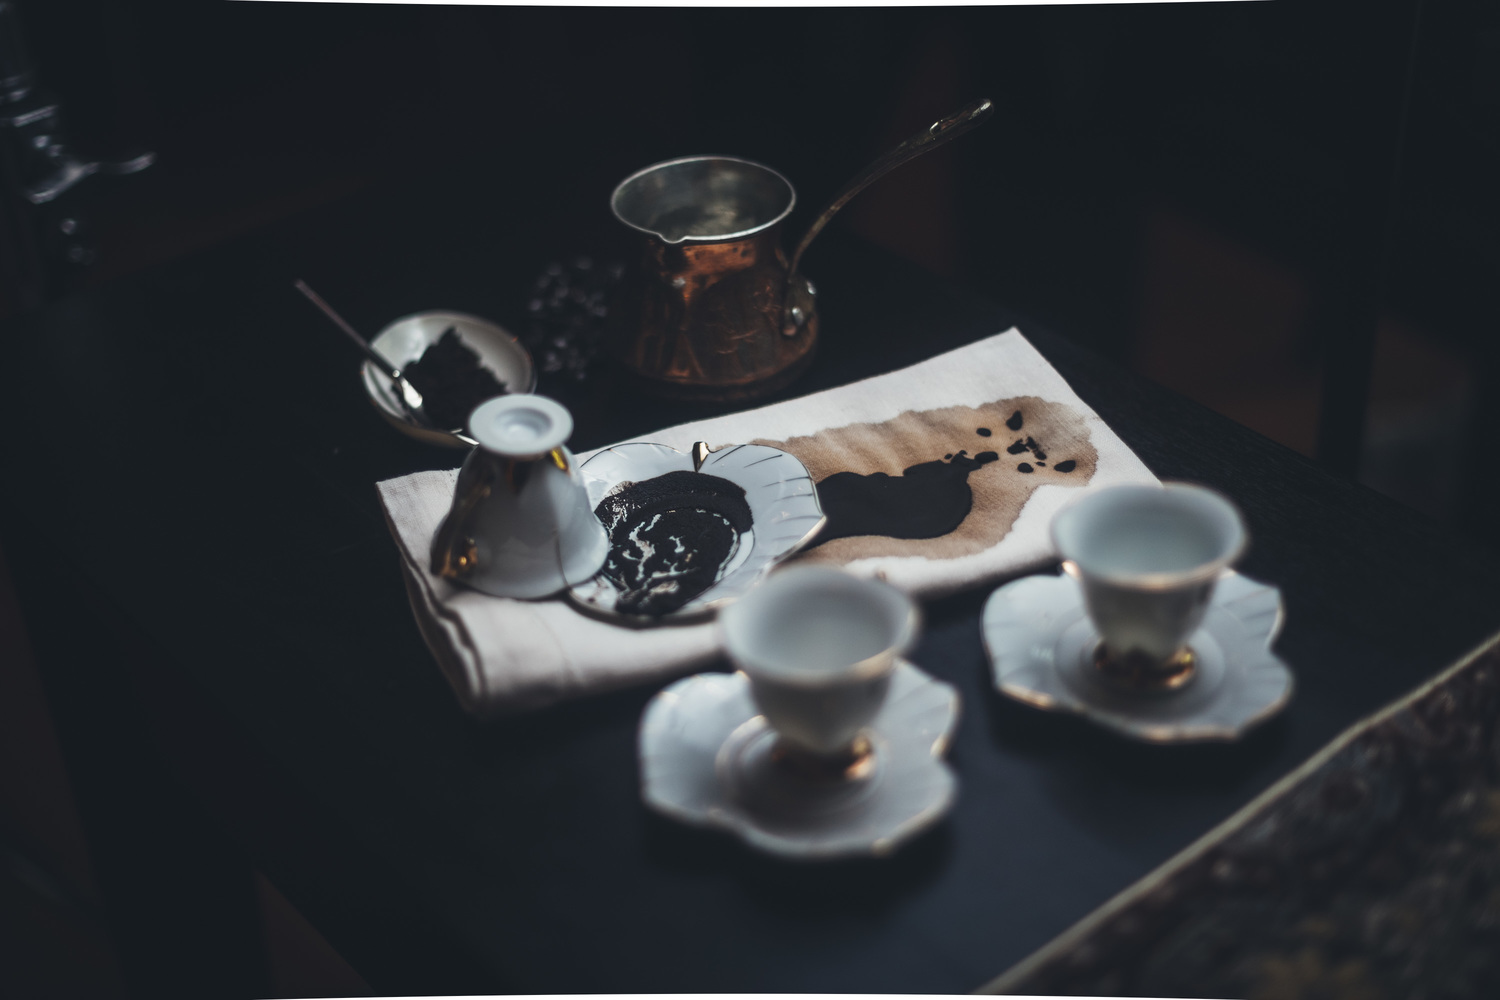 Beyond the cup psychic turkish coffee readings img9645g buycottarizona Image collections